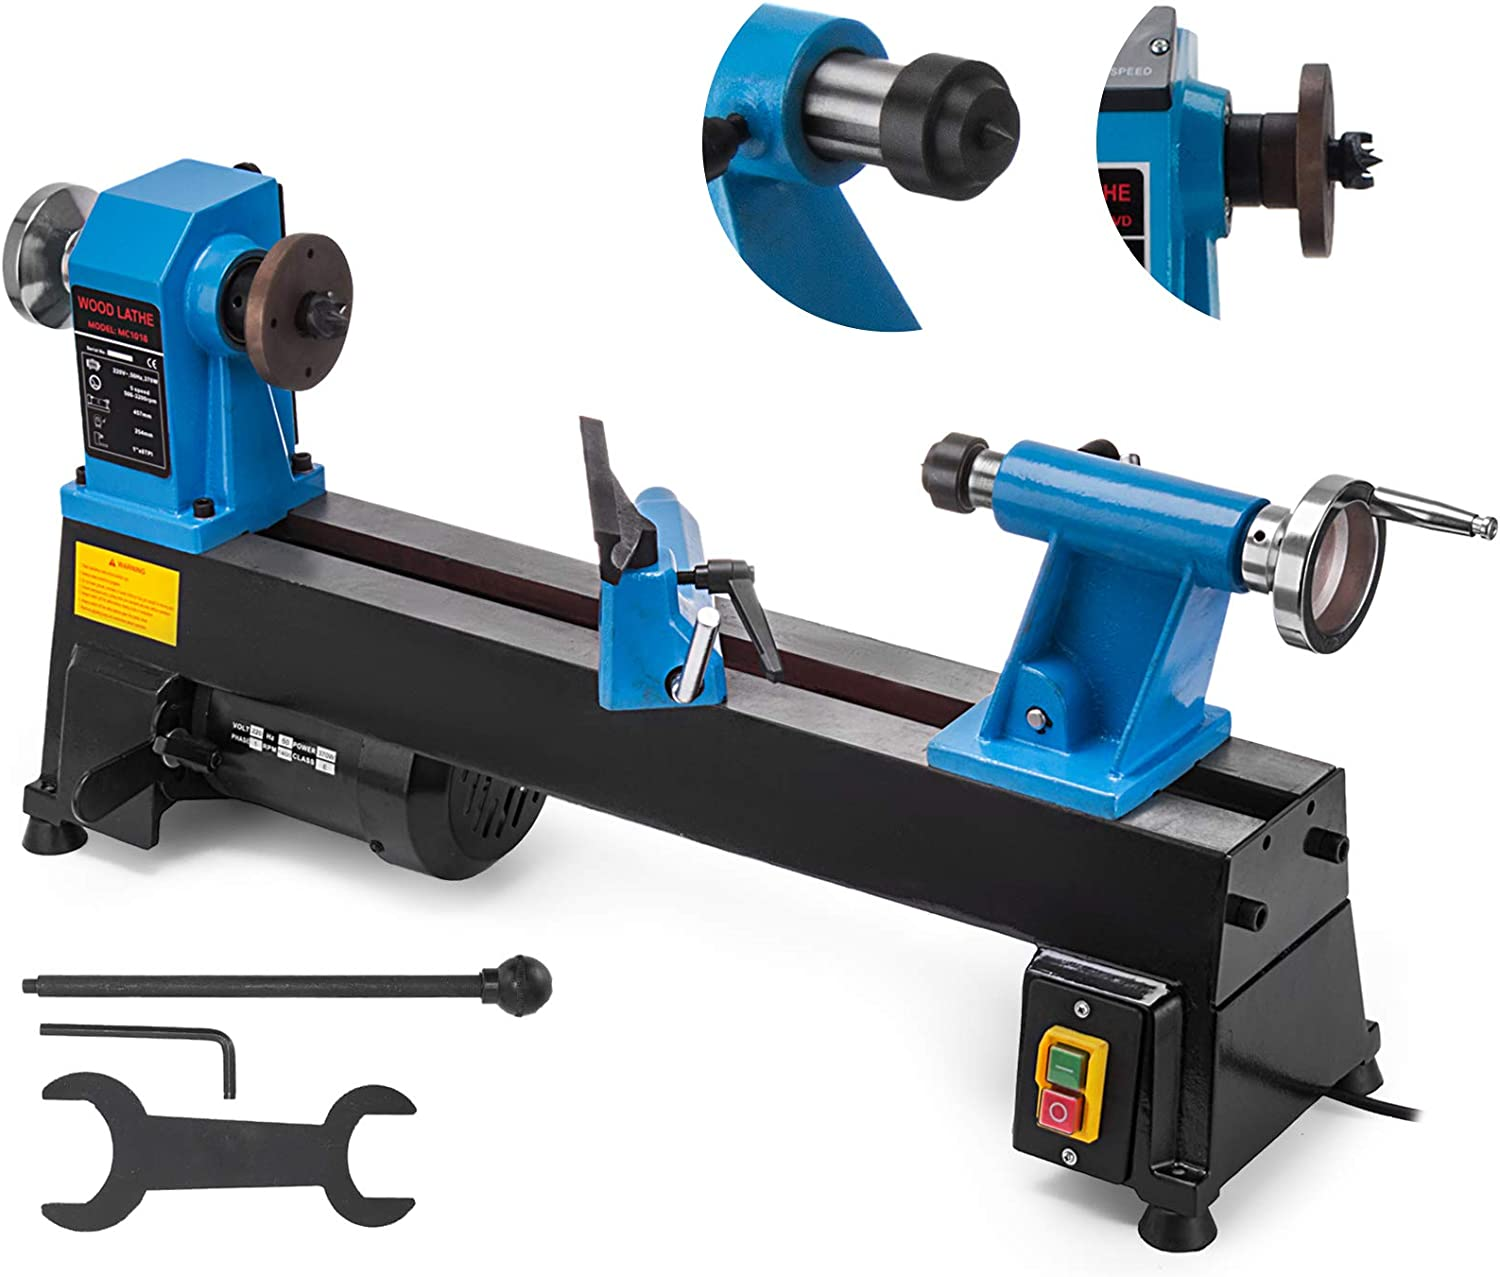 Mophorn 10 x 18 Inch Bench Top Heavy Duty Wood Lathe